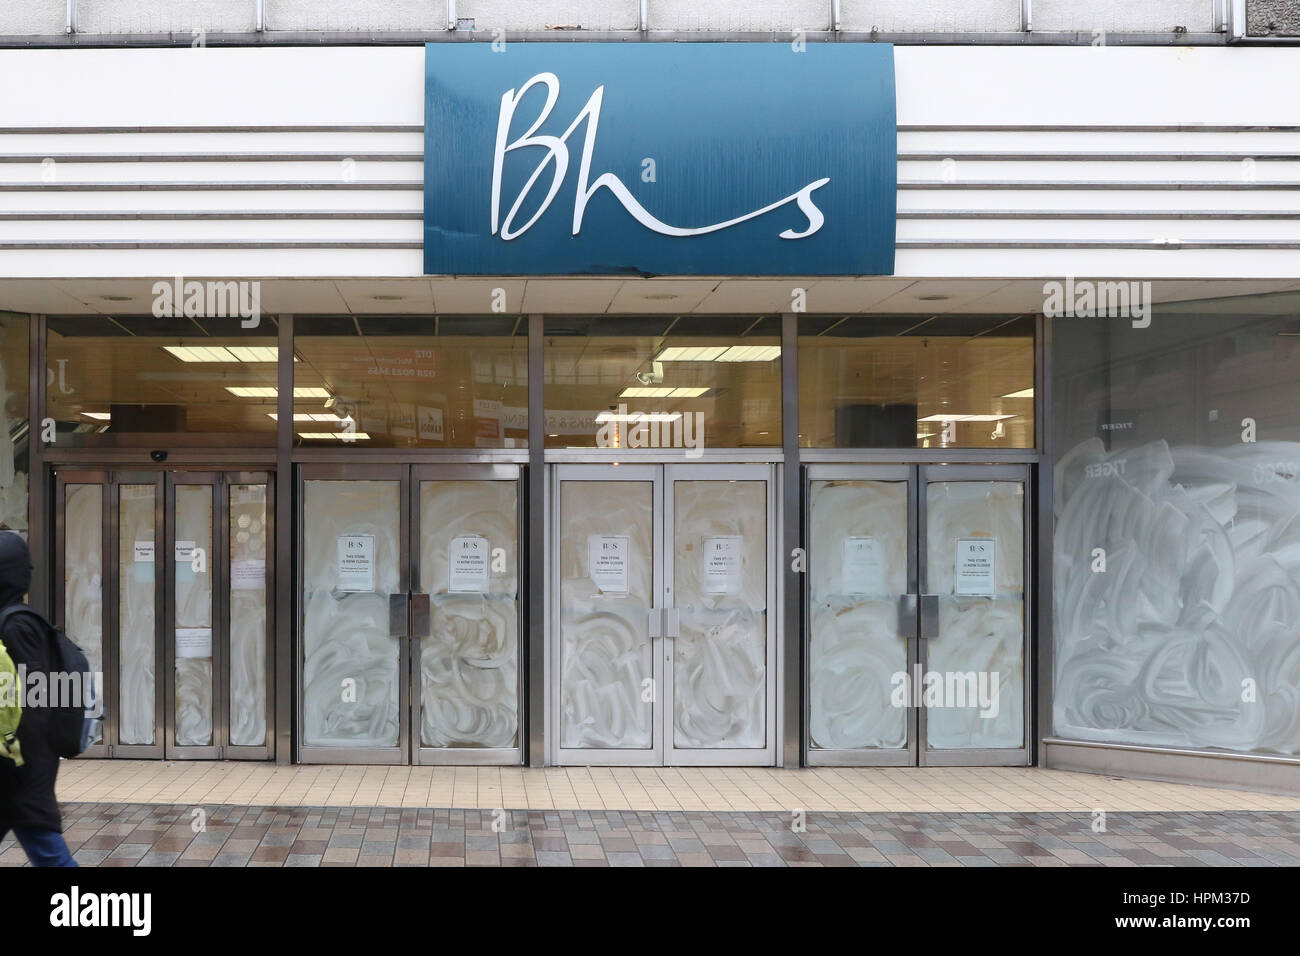 Fomer British Home Stores (BHS) premises in the cetre of Belfast, Northern Ireland. - Stock Image